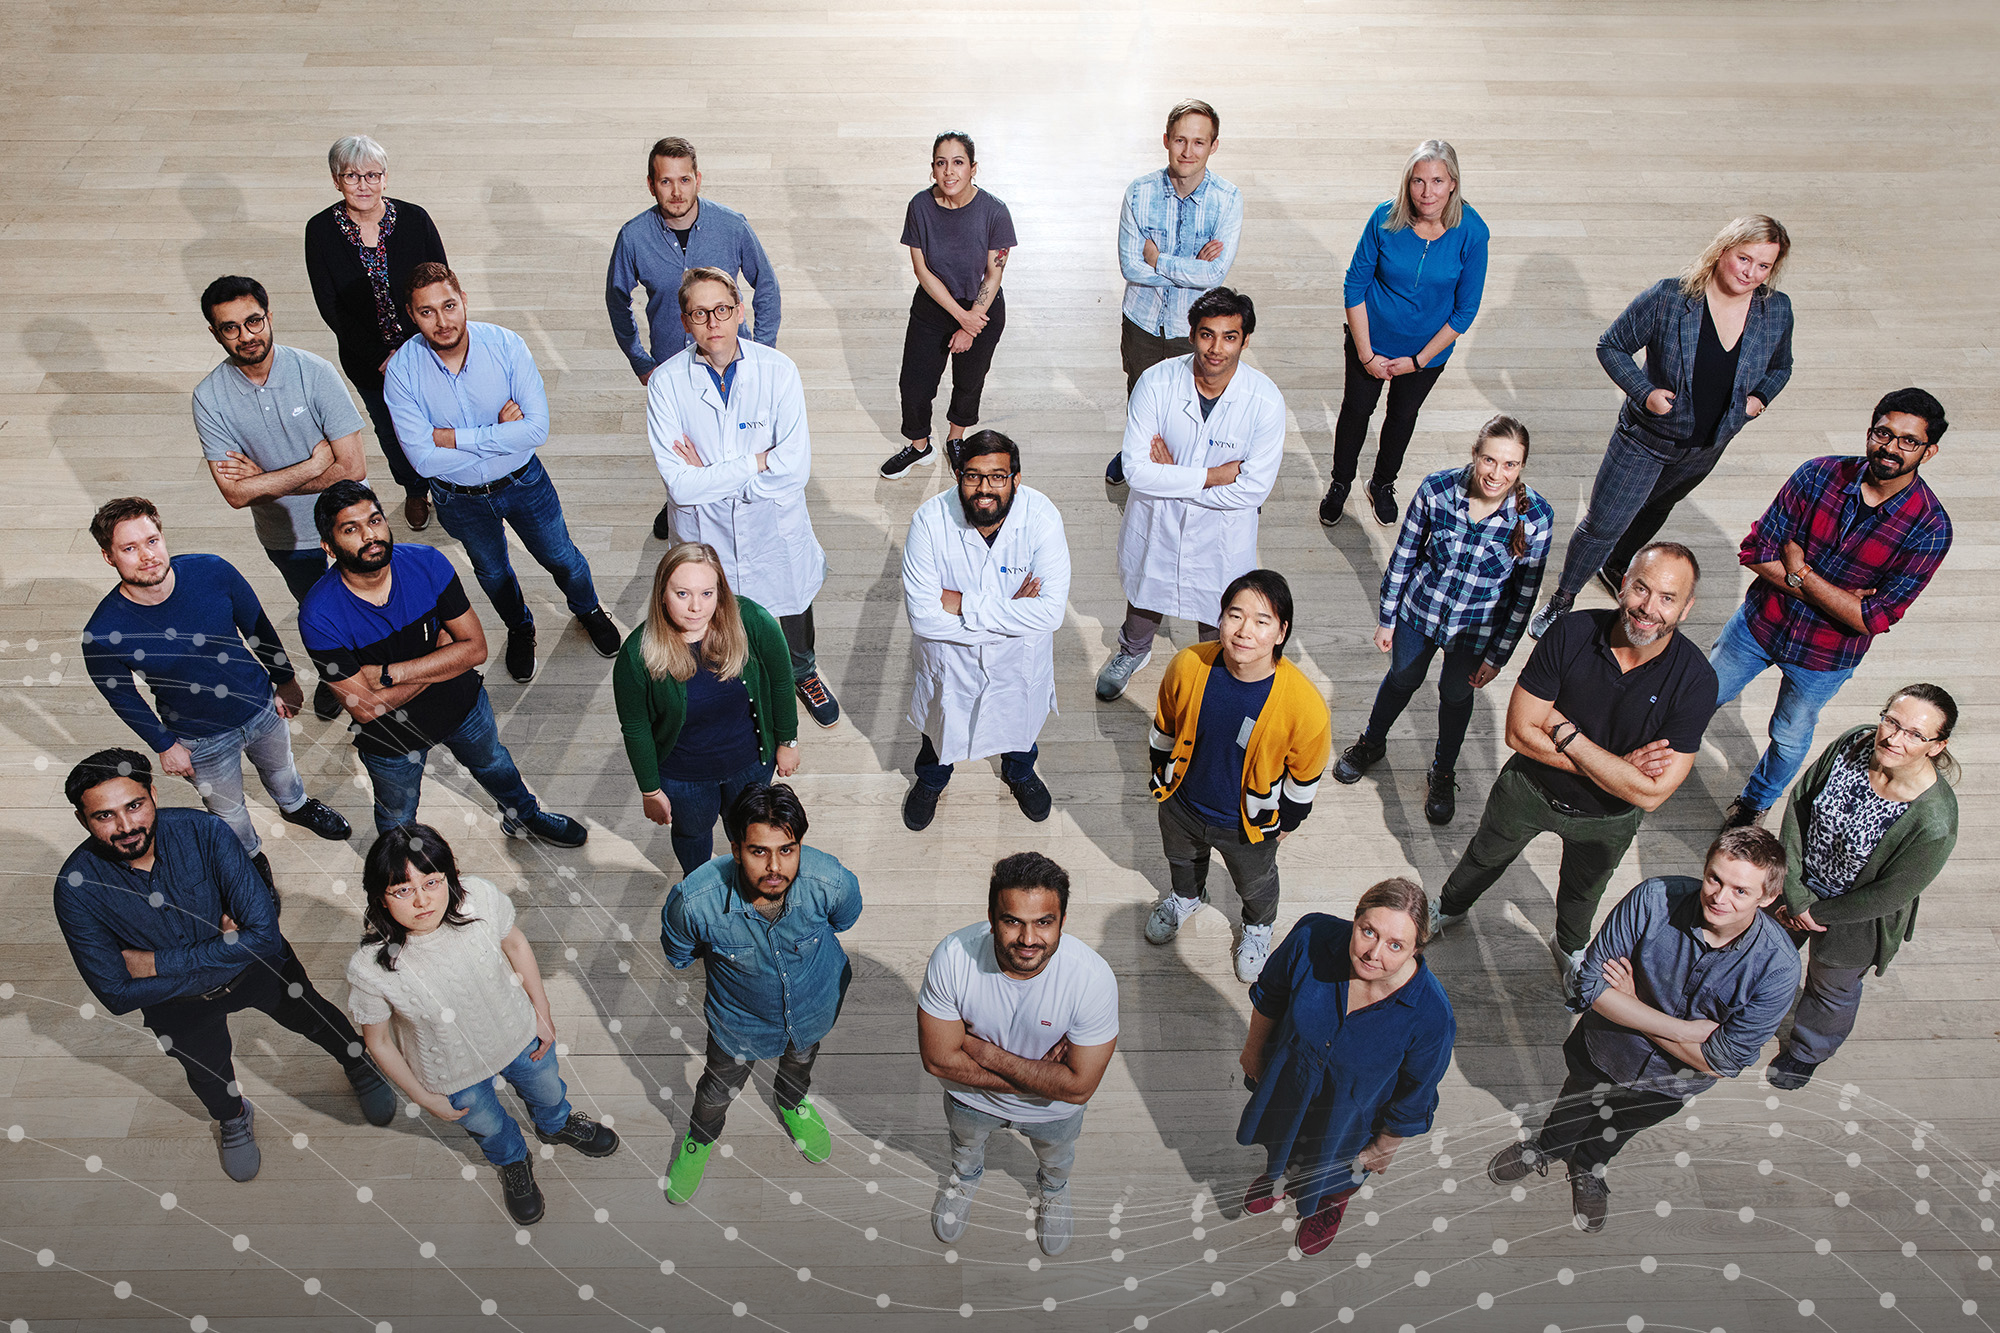 Associate Professor Sulalit Bandyopadhyay and his corona test team at the Department of Chemical Engineering, NTNU. Photo.